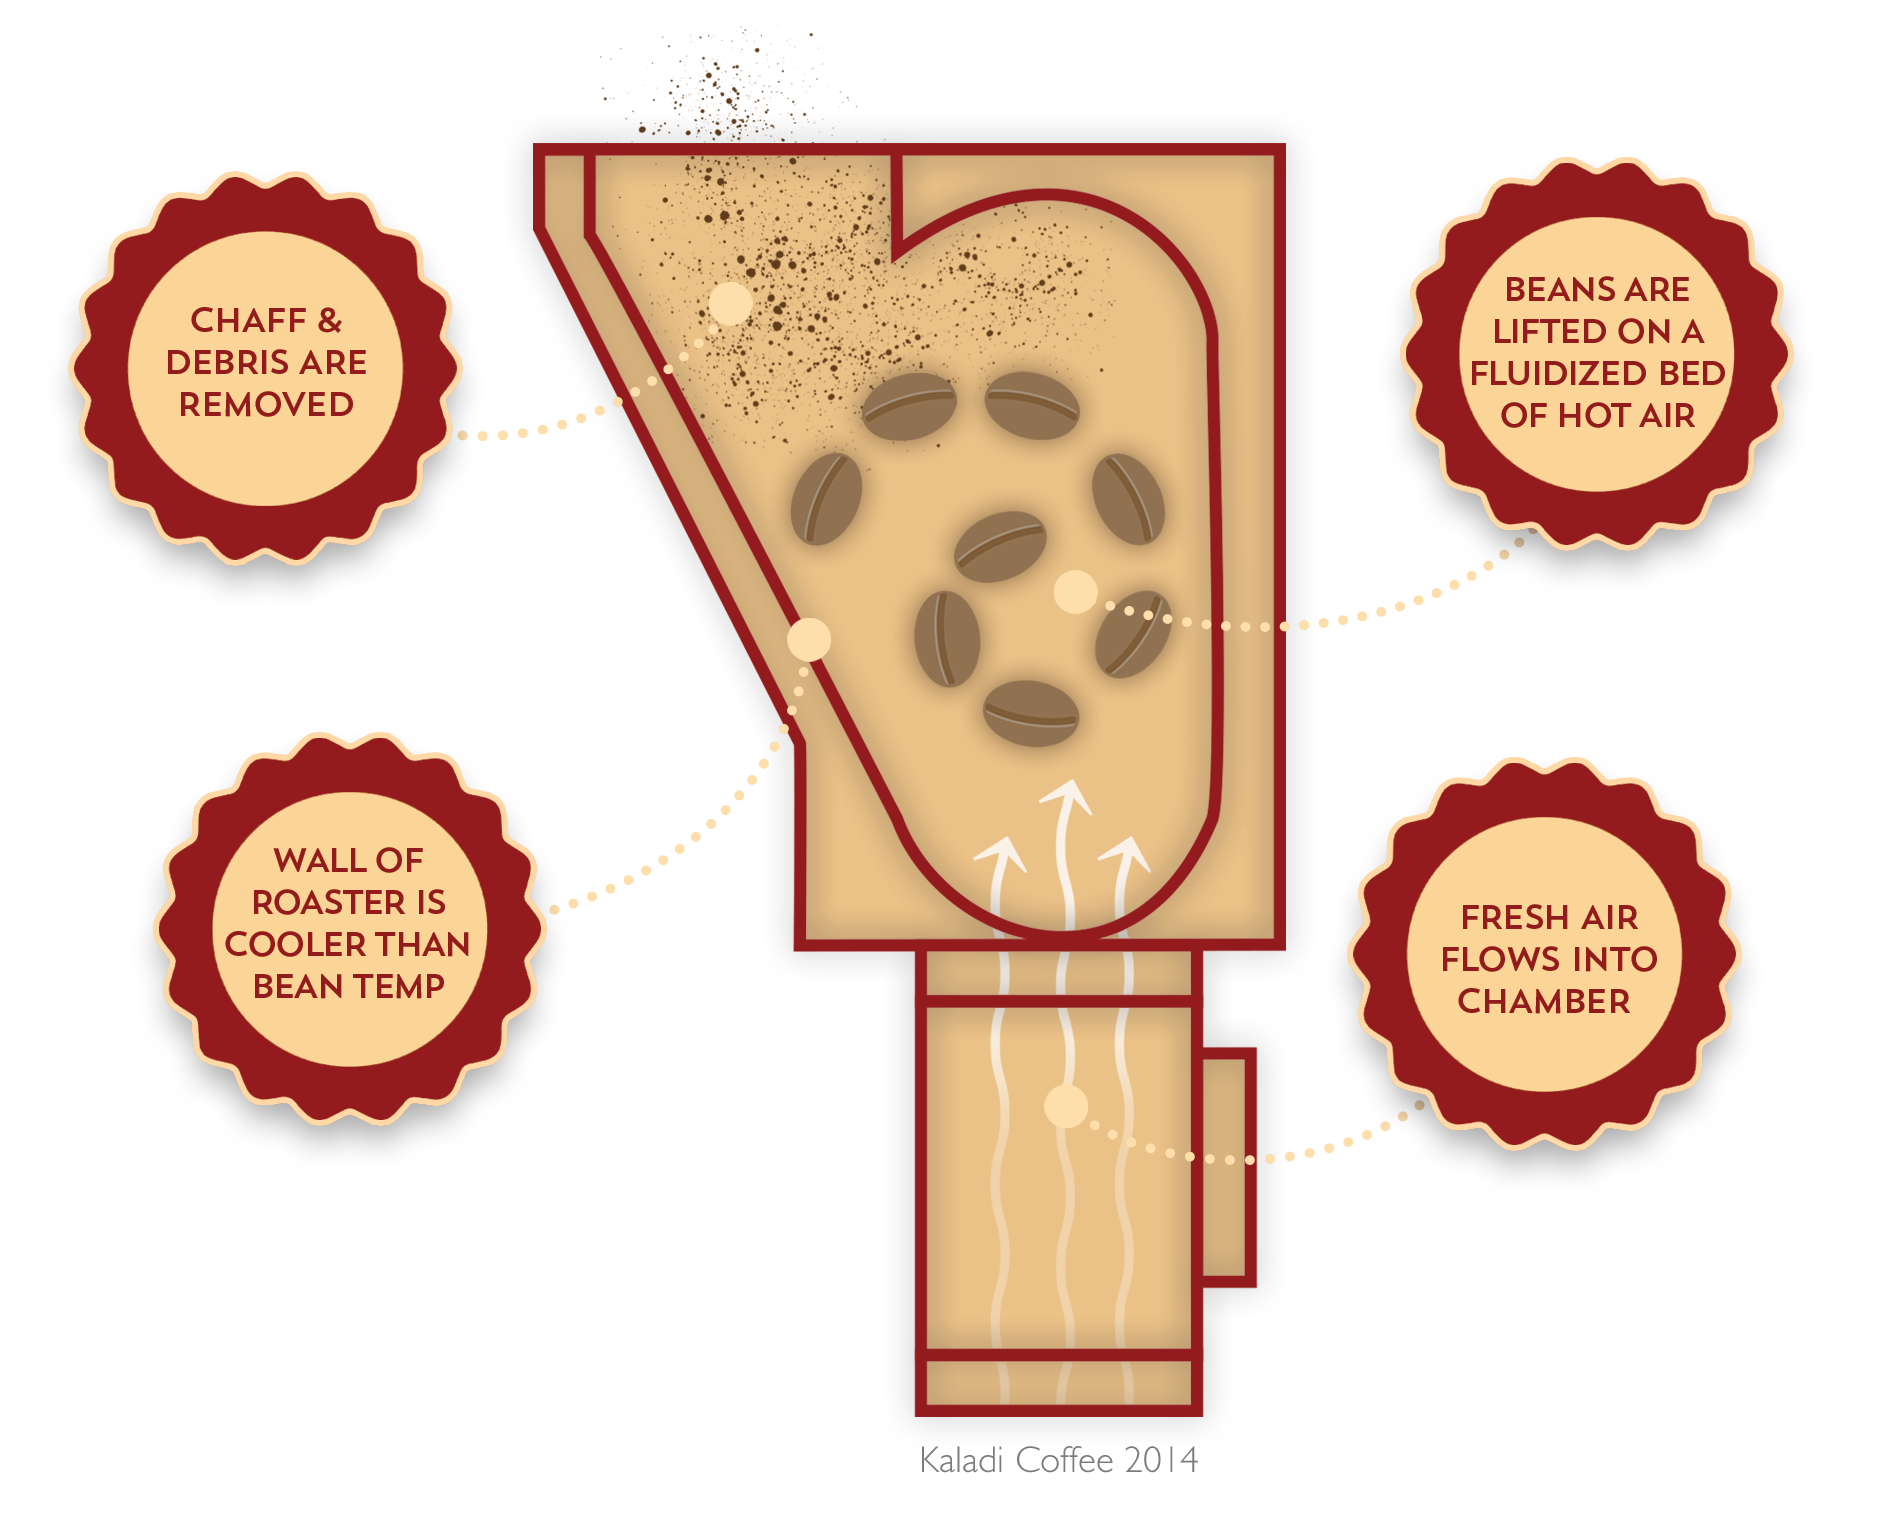 Air Roaster graphic